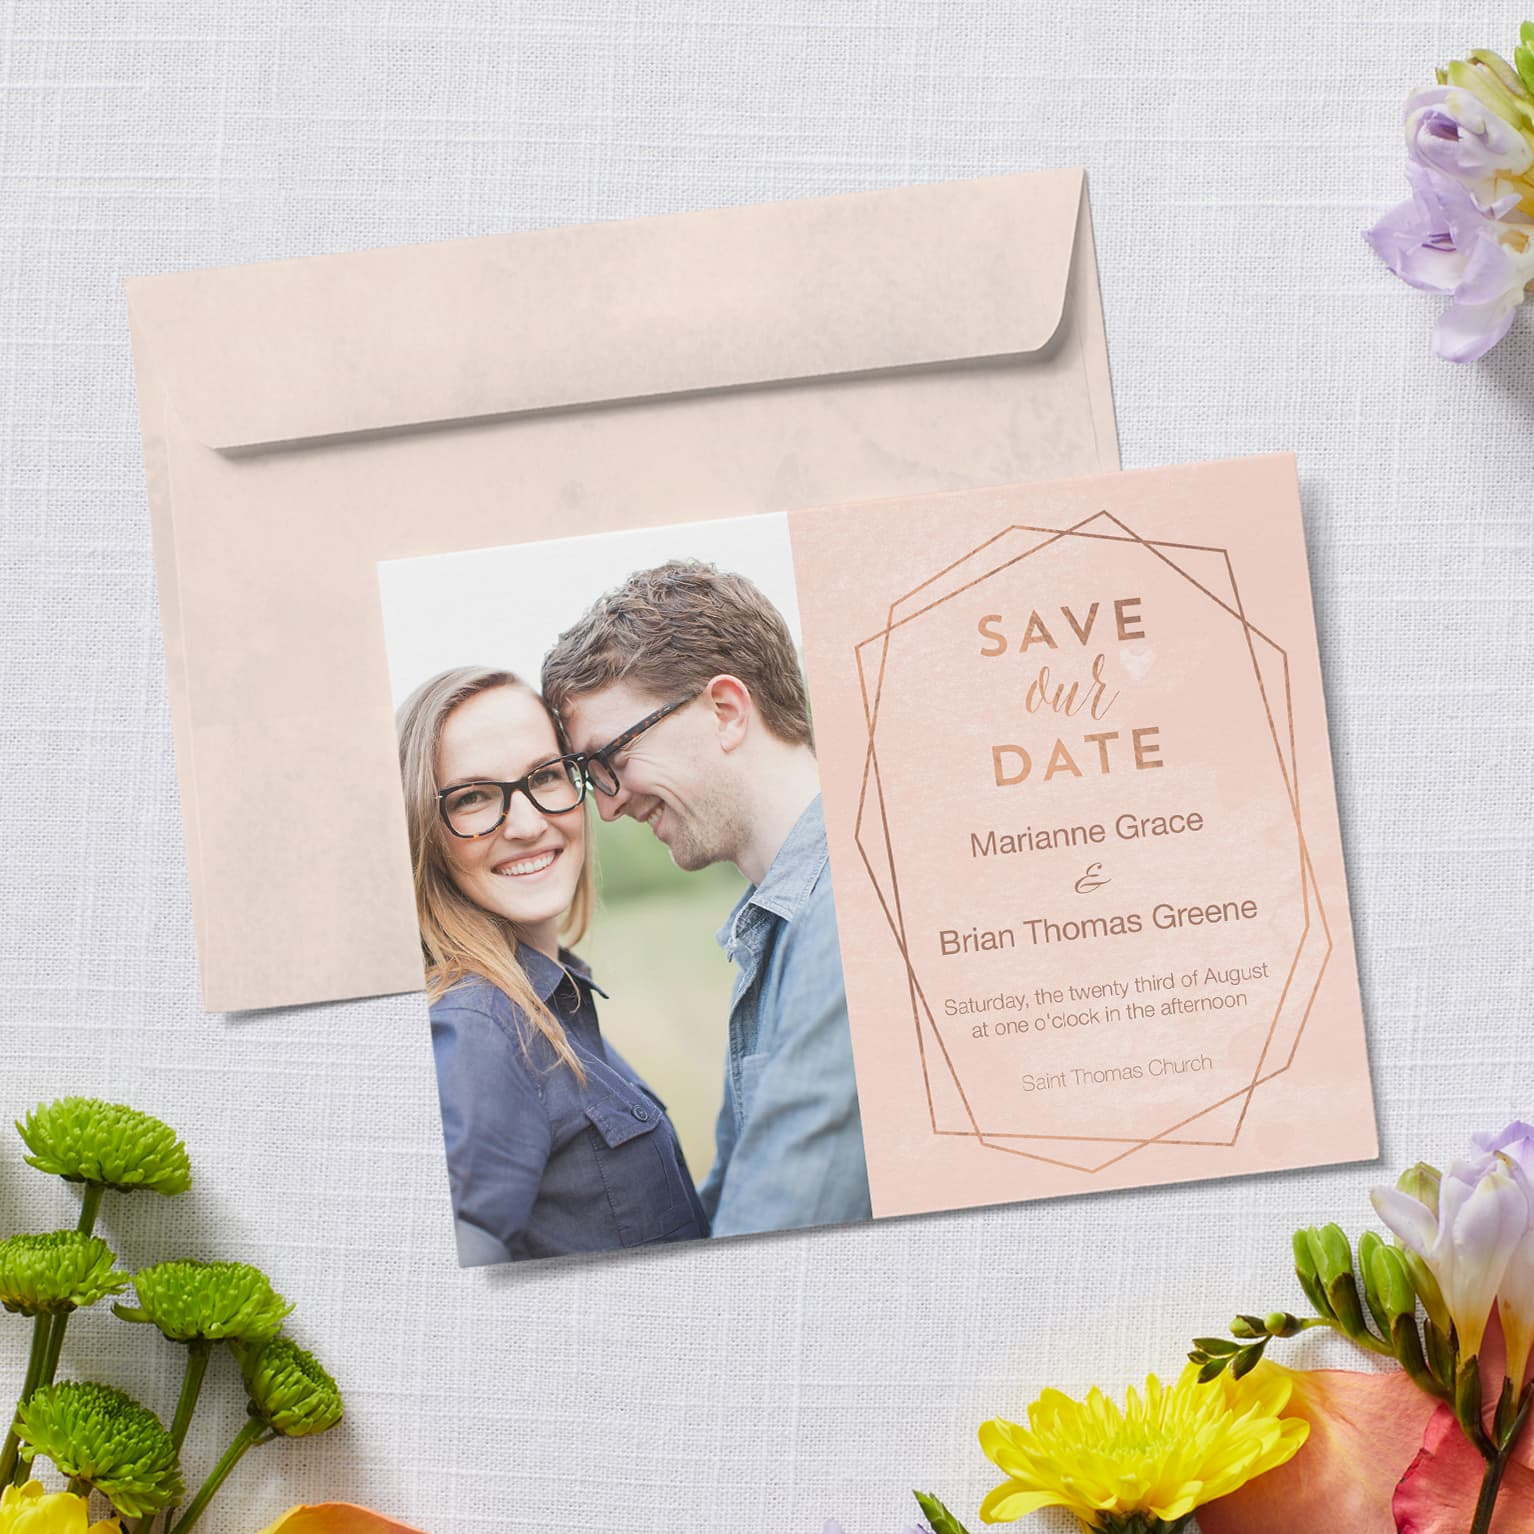 Save the date cards, save the date postcards | Vistaprint Wedding